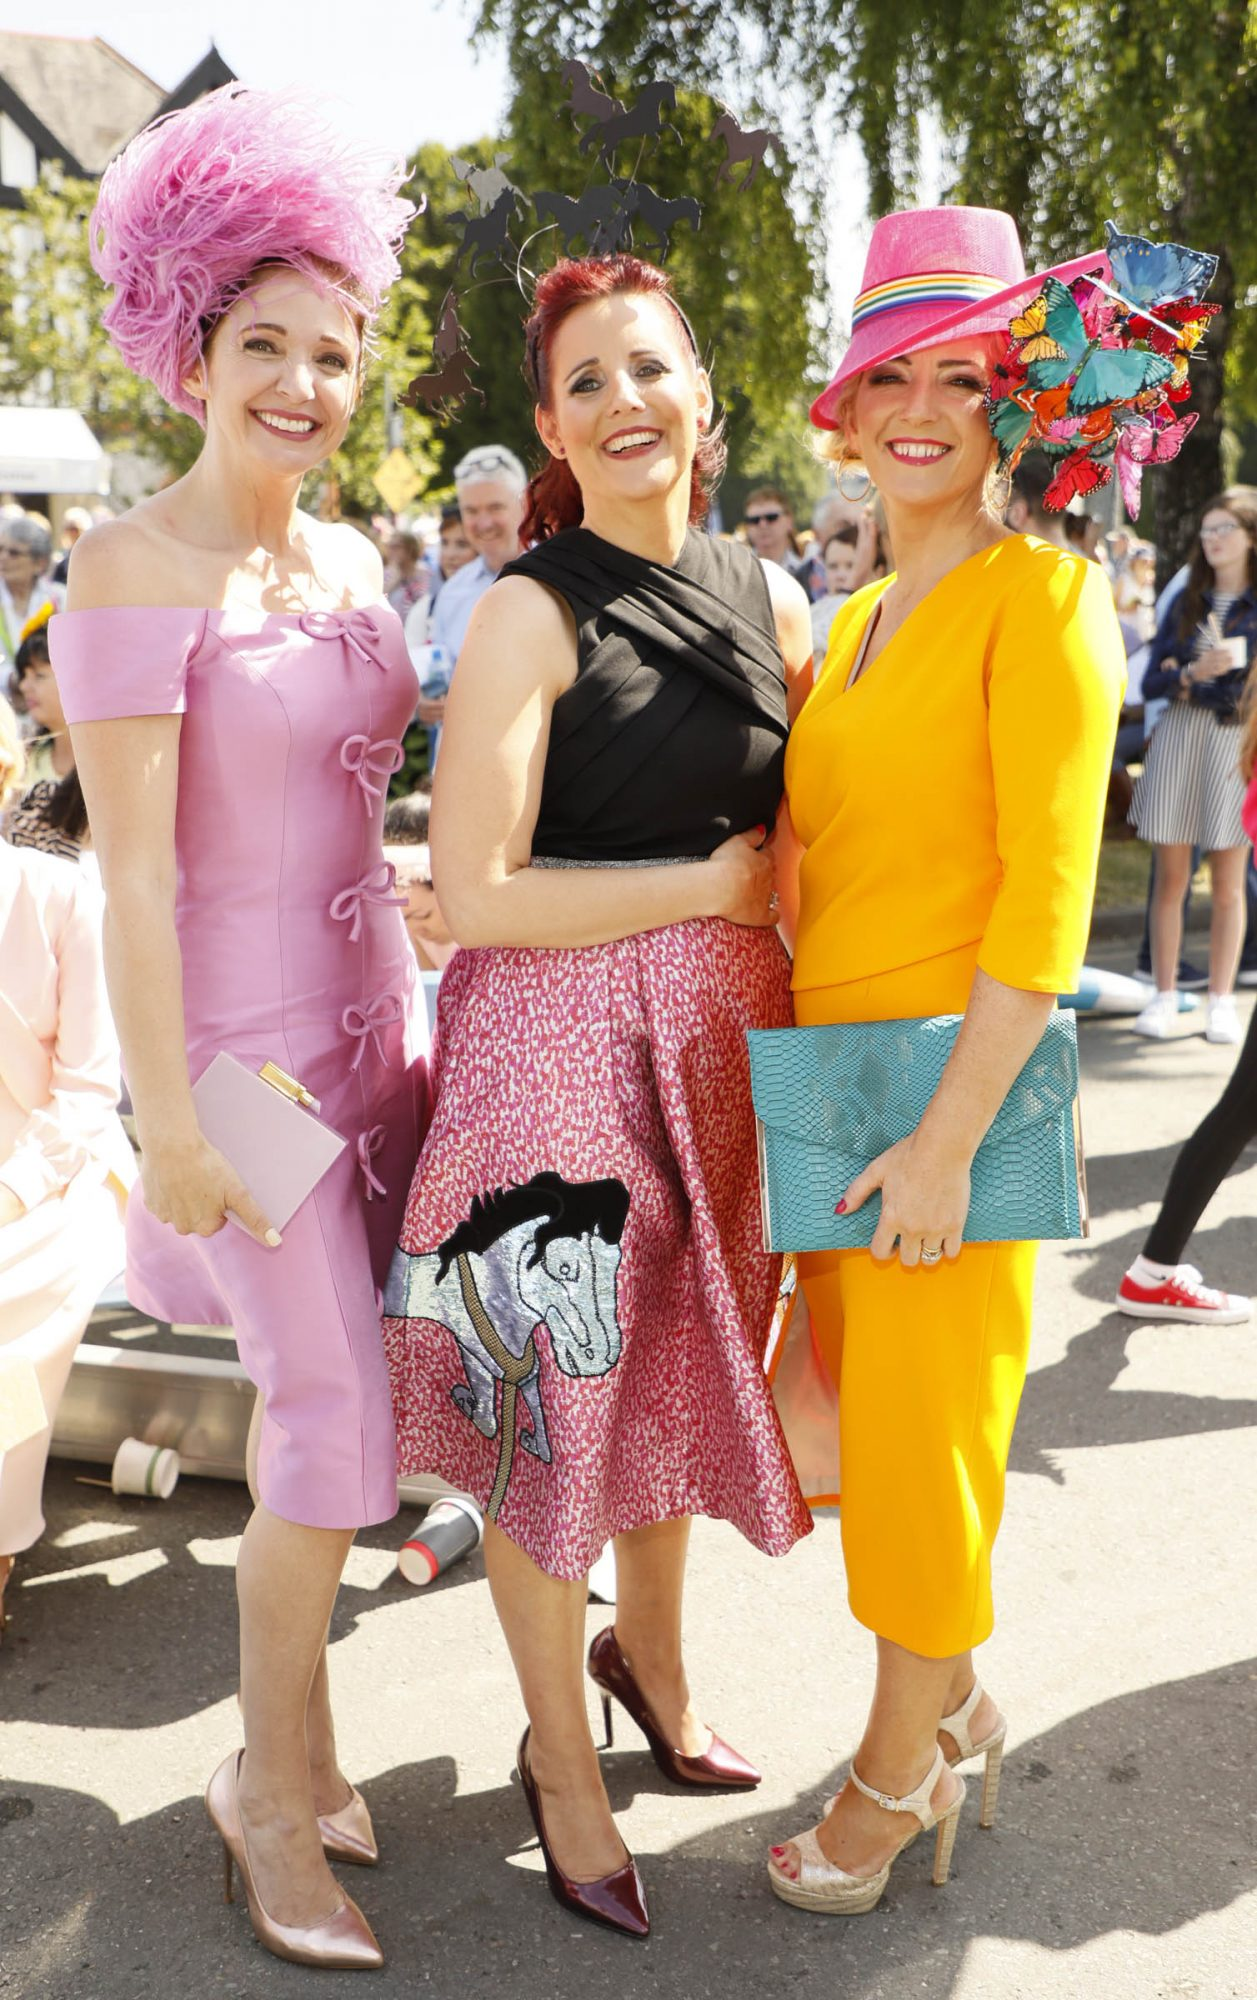 Carol Kennelly, Joanne Murphy and Elaine Kelleher at the Dundrum Town Centre Ladies' Day at the Dublin Horse Show in the RDS. Photo: Kieran Harnett